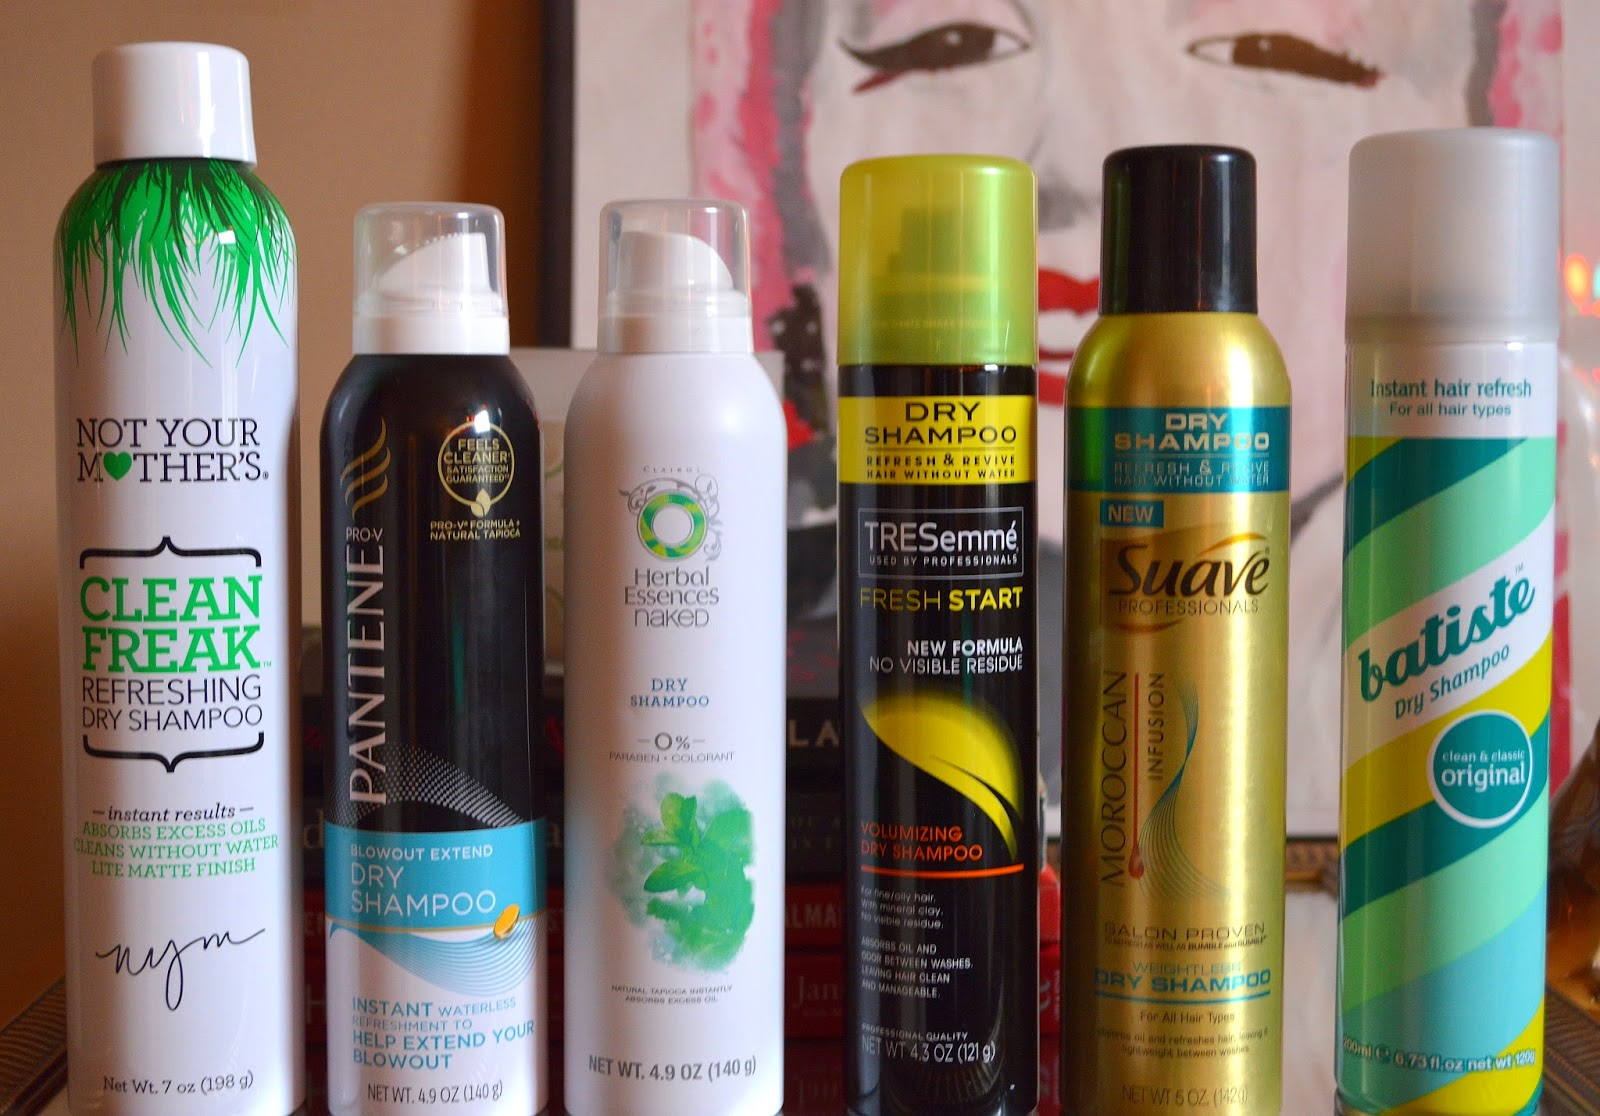 WHICH DRUGSTORE DRY SHAMPOO SHOULD YOU BUY?